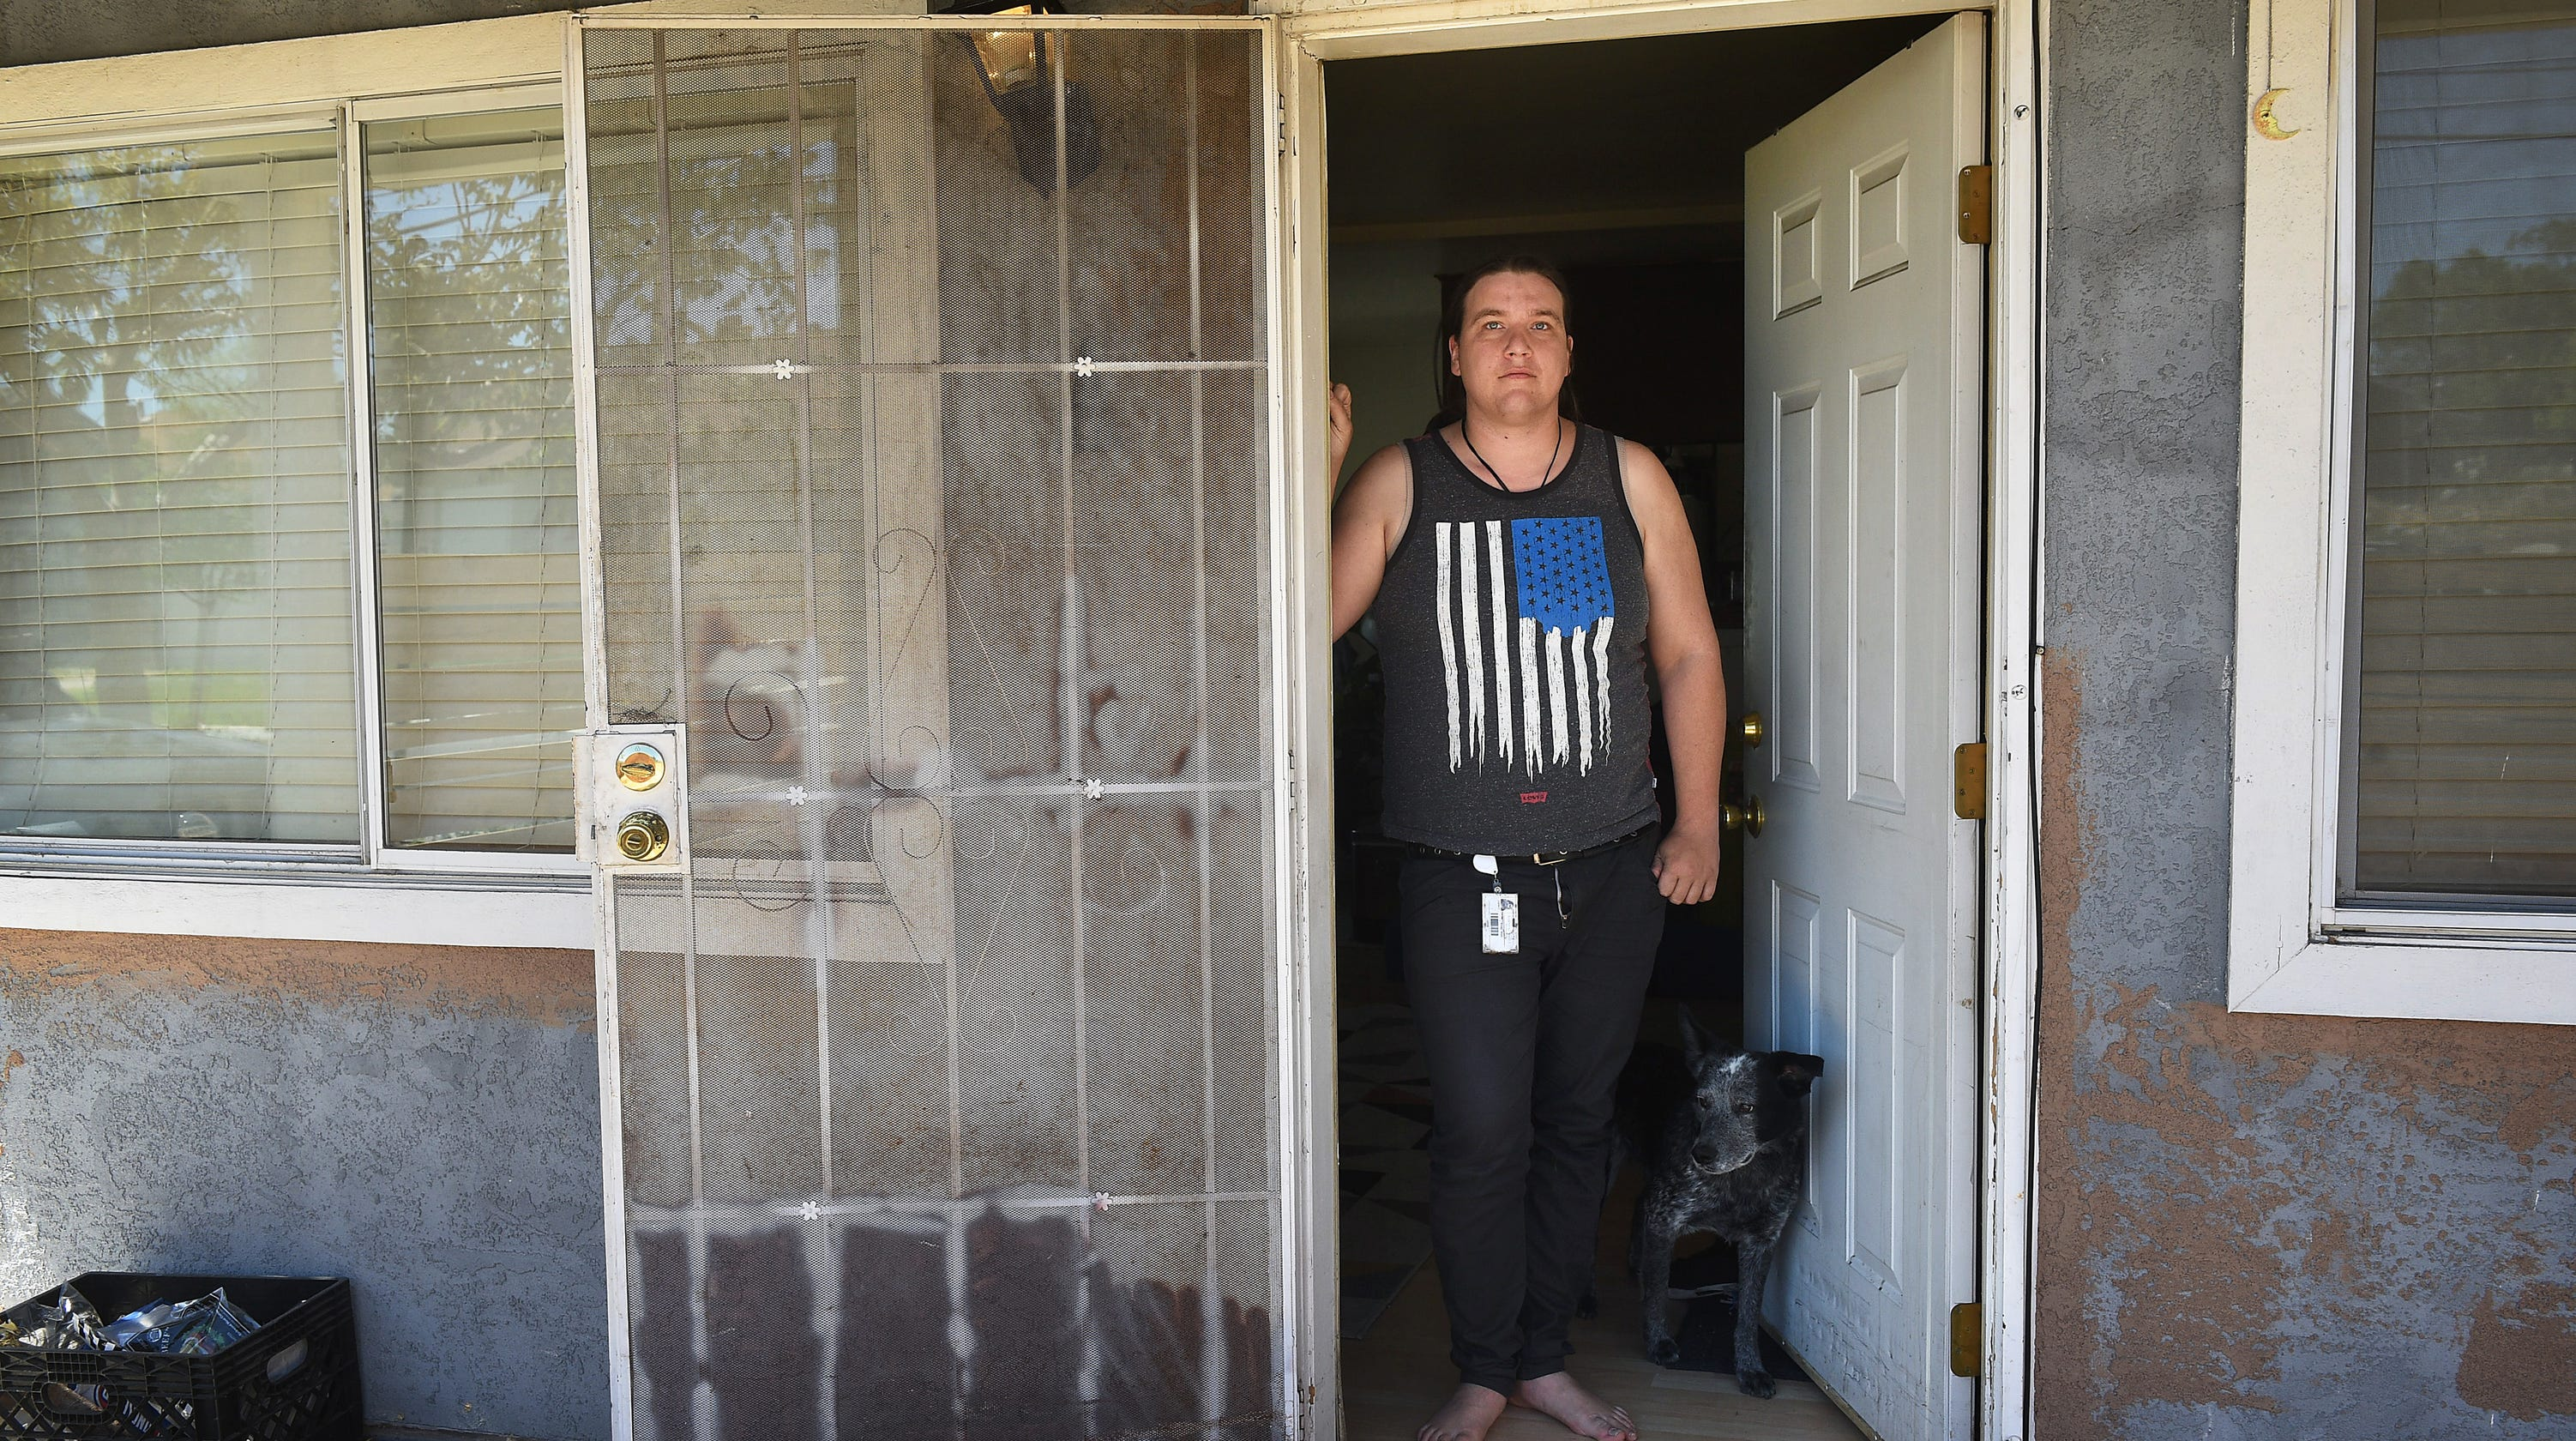 Rent and evictions in Reno are up amid a shortage of ...